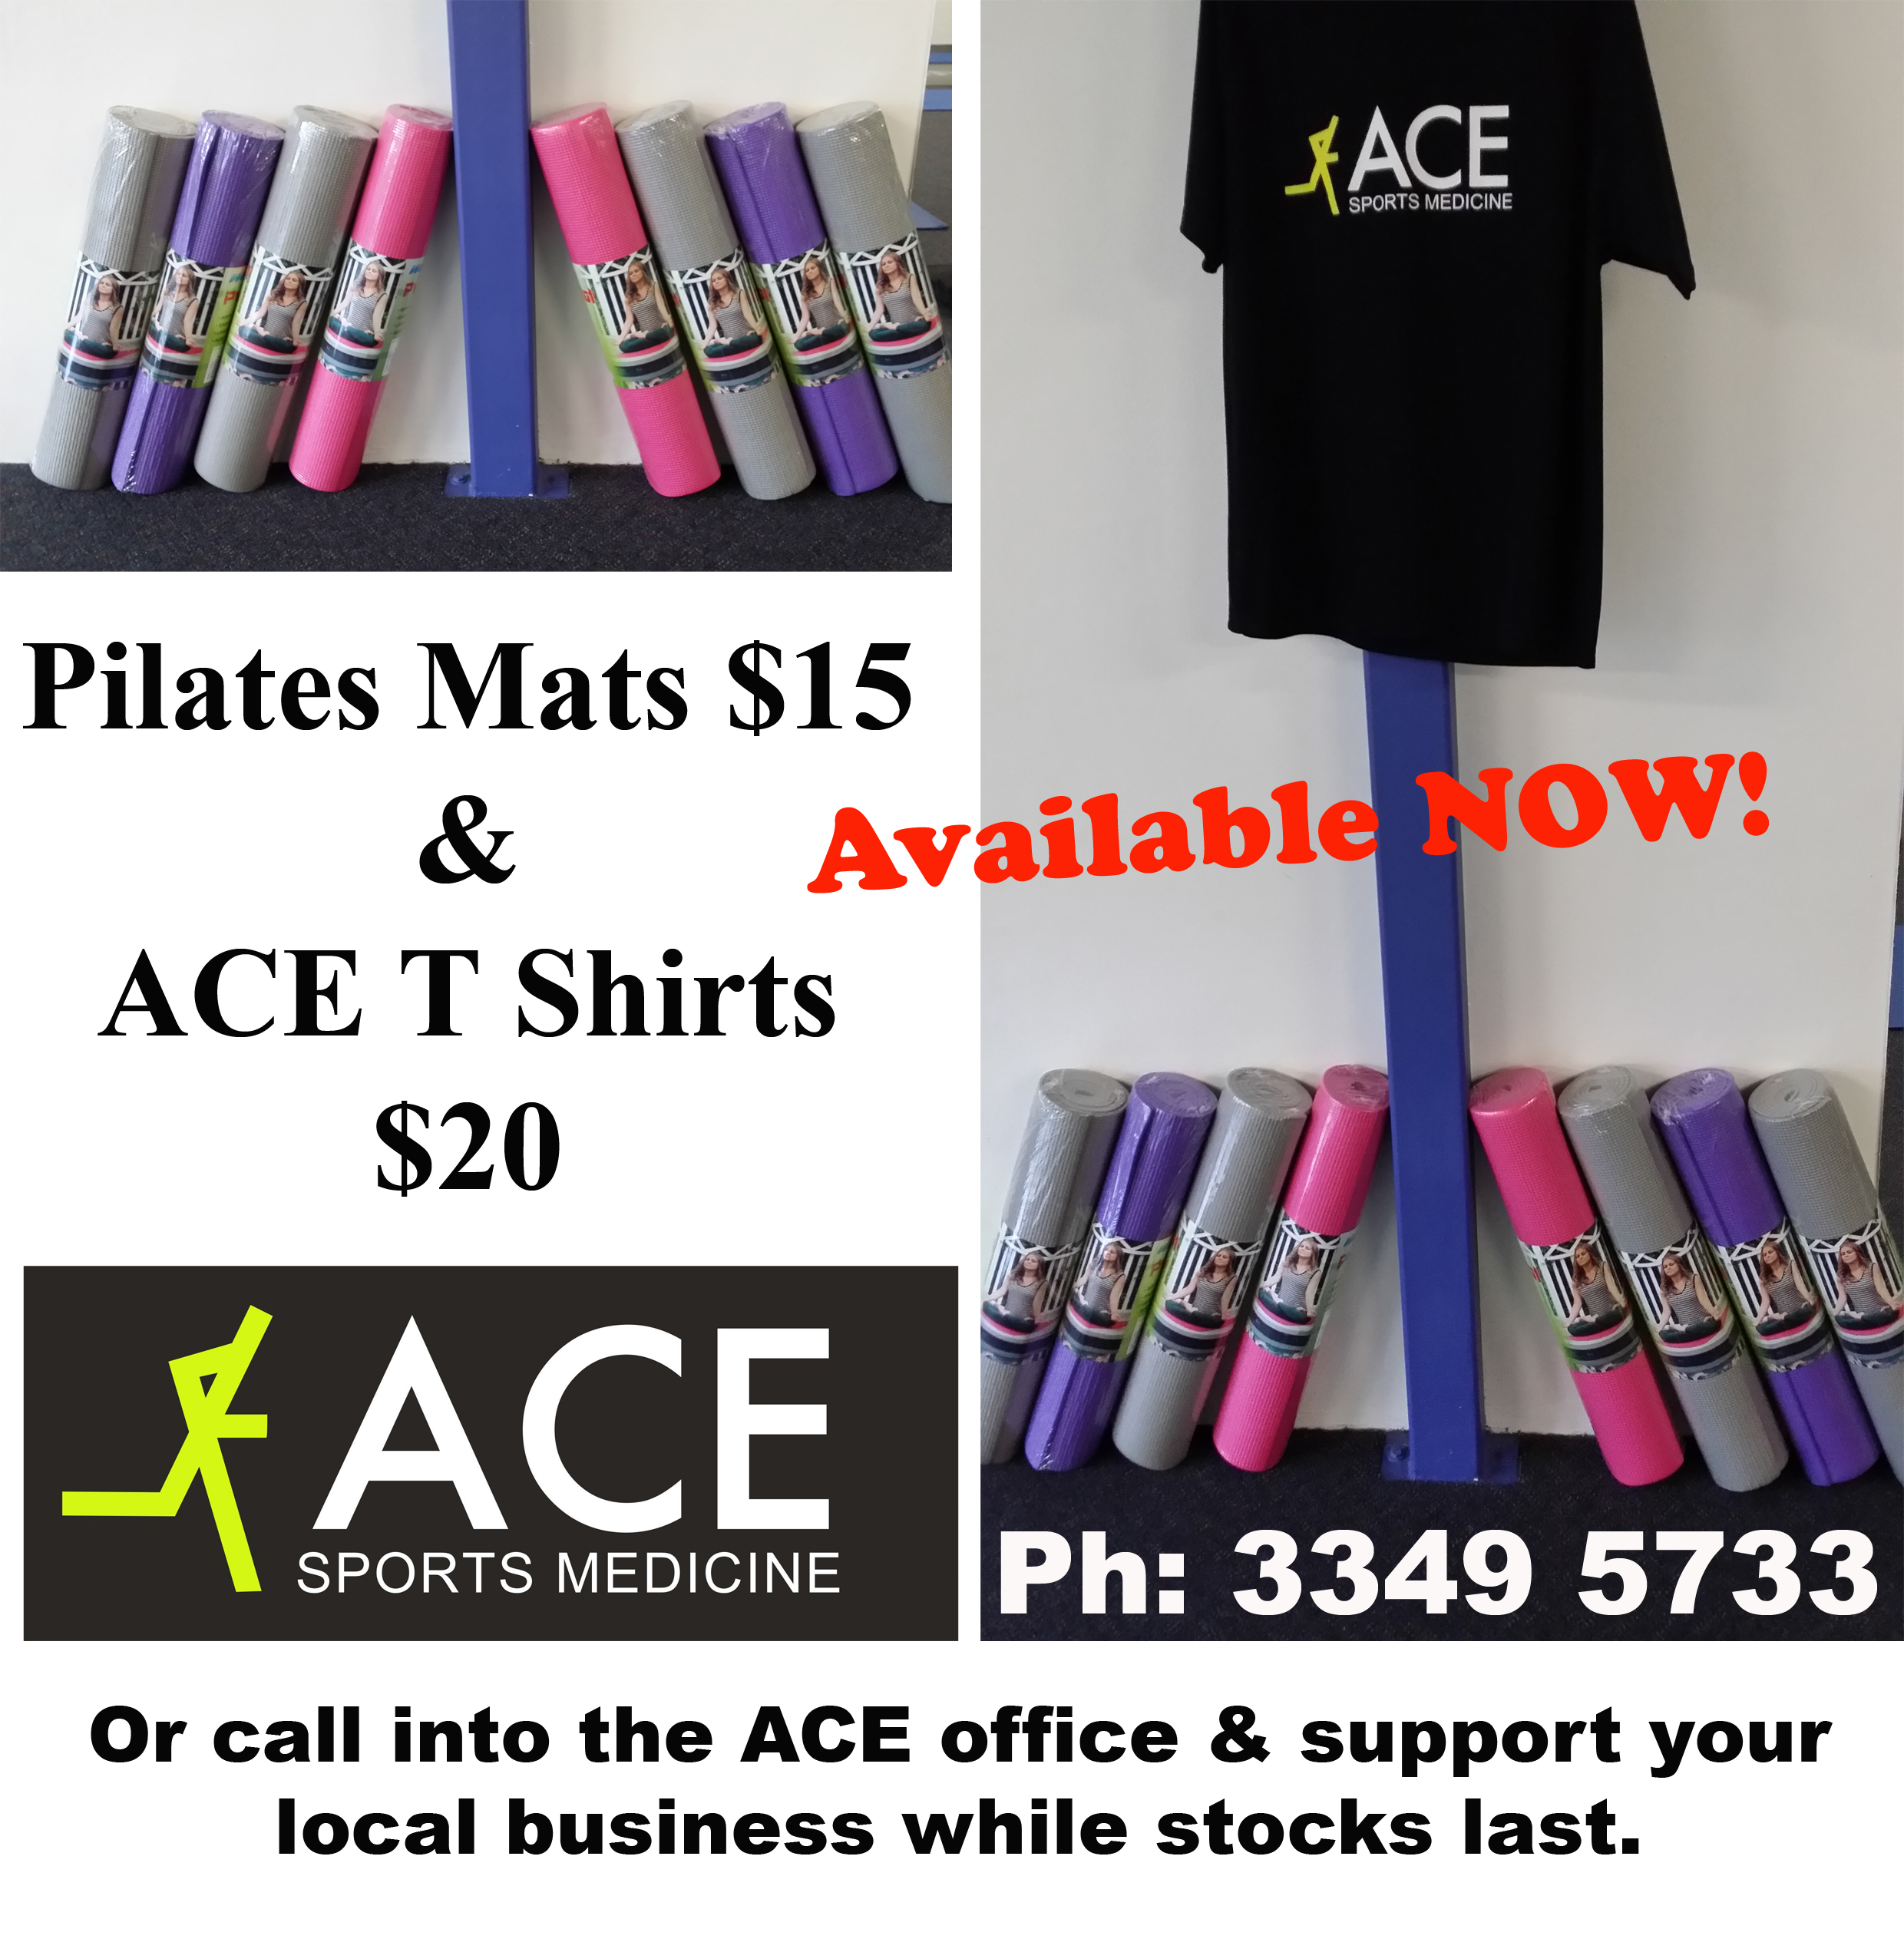 Ace Pilates Mats + TShirts copy